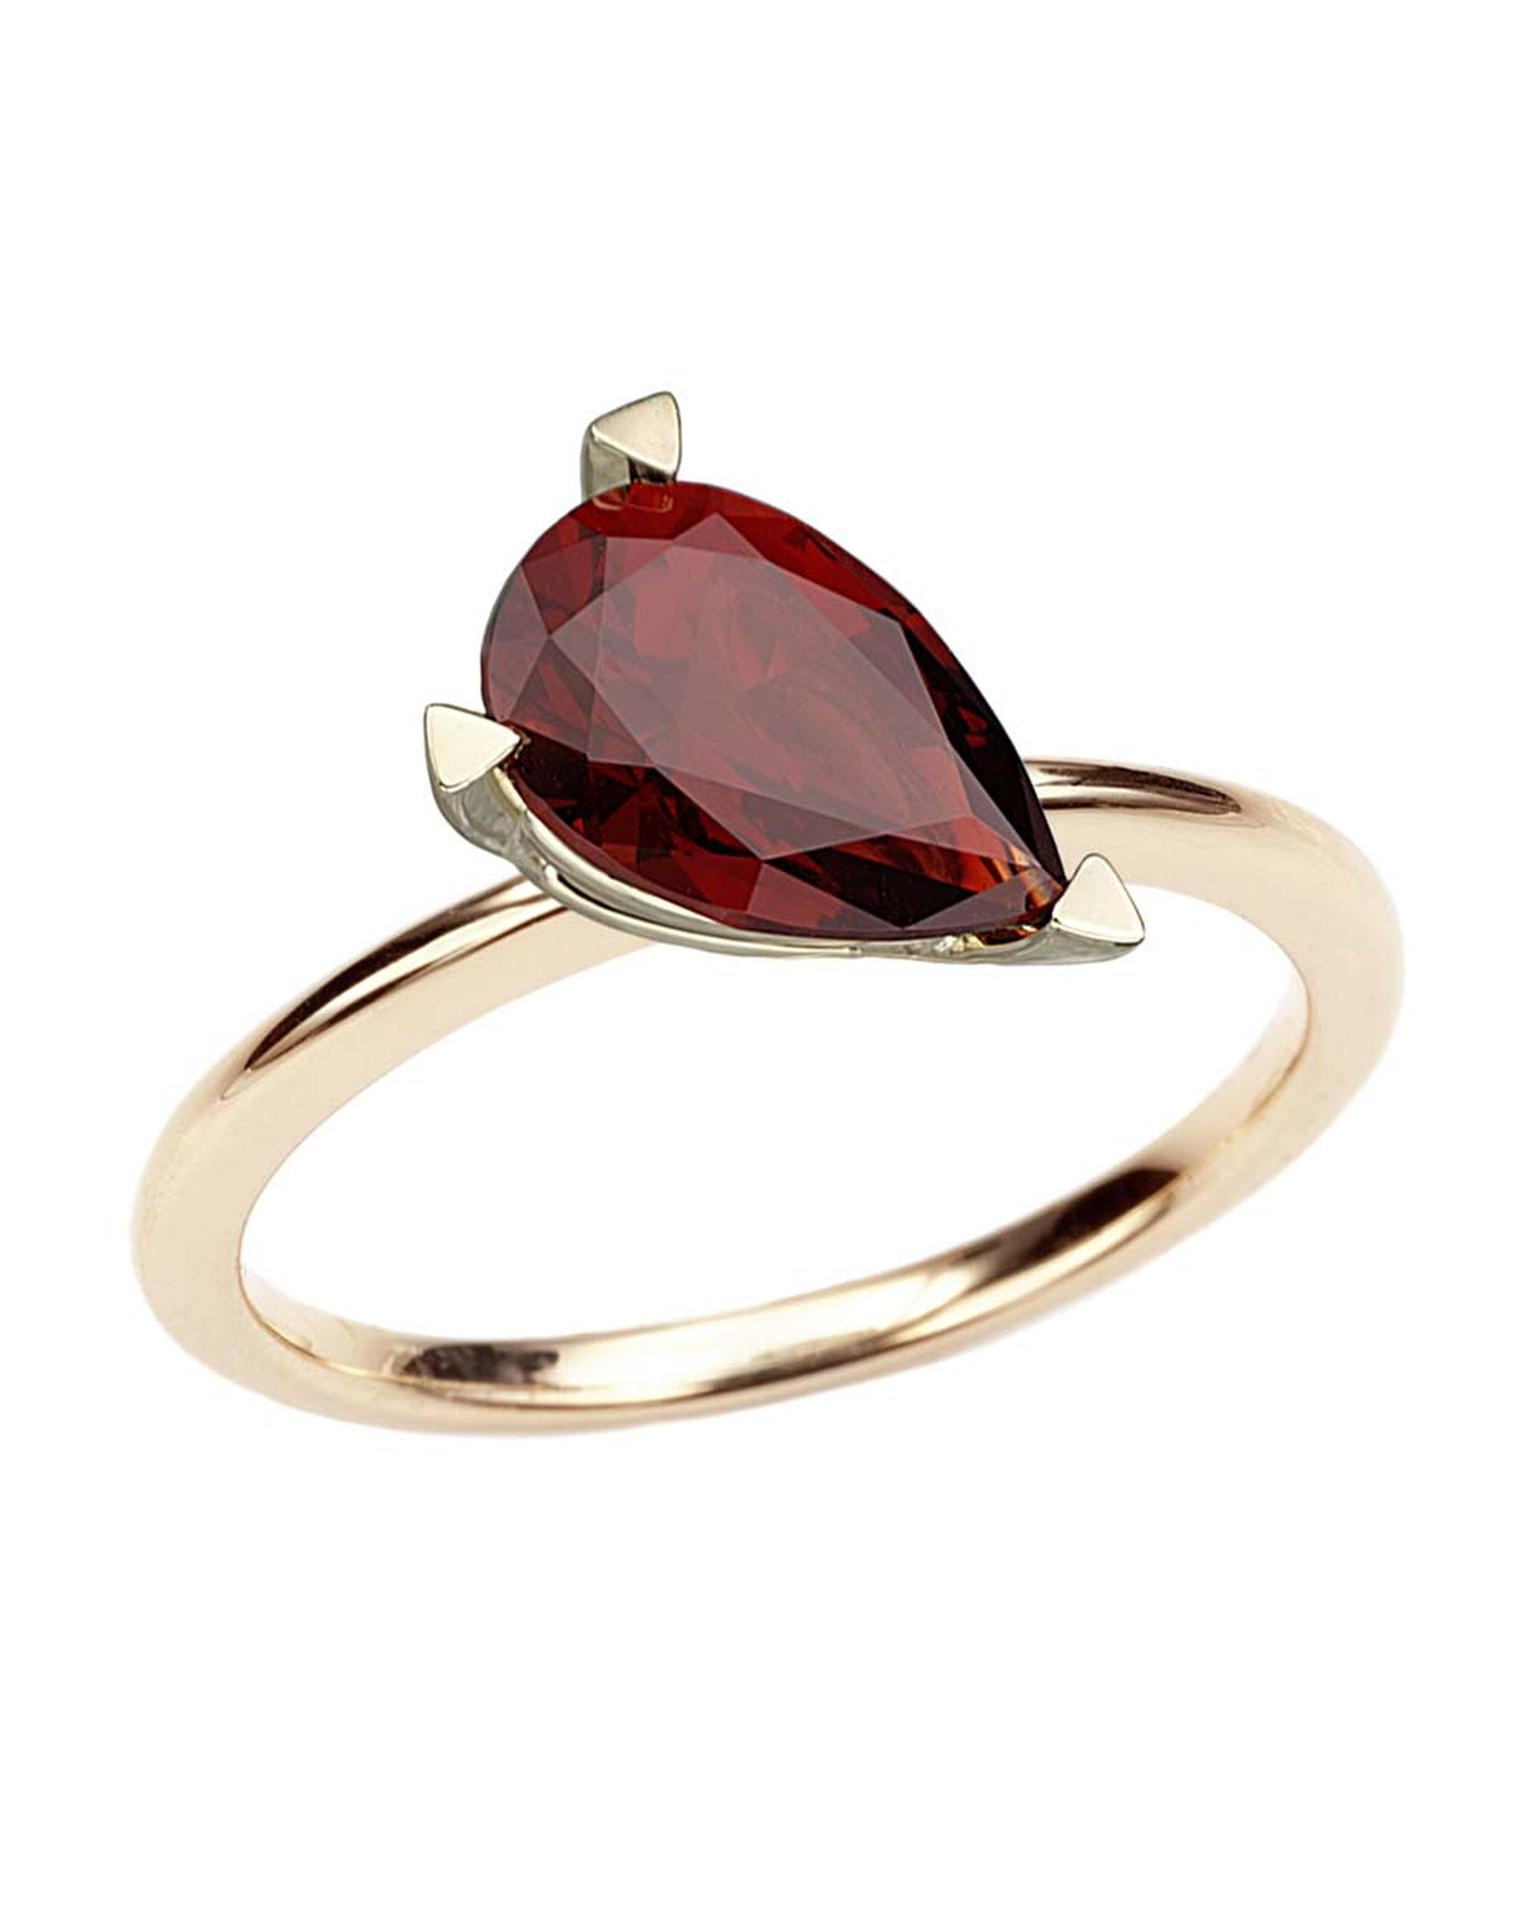 Octium ring in yellow gold with a large pear-cut garnet.